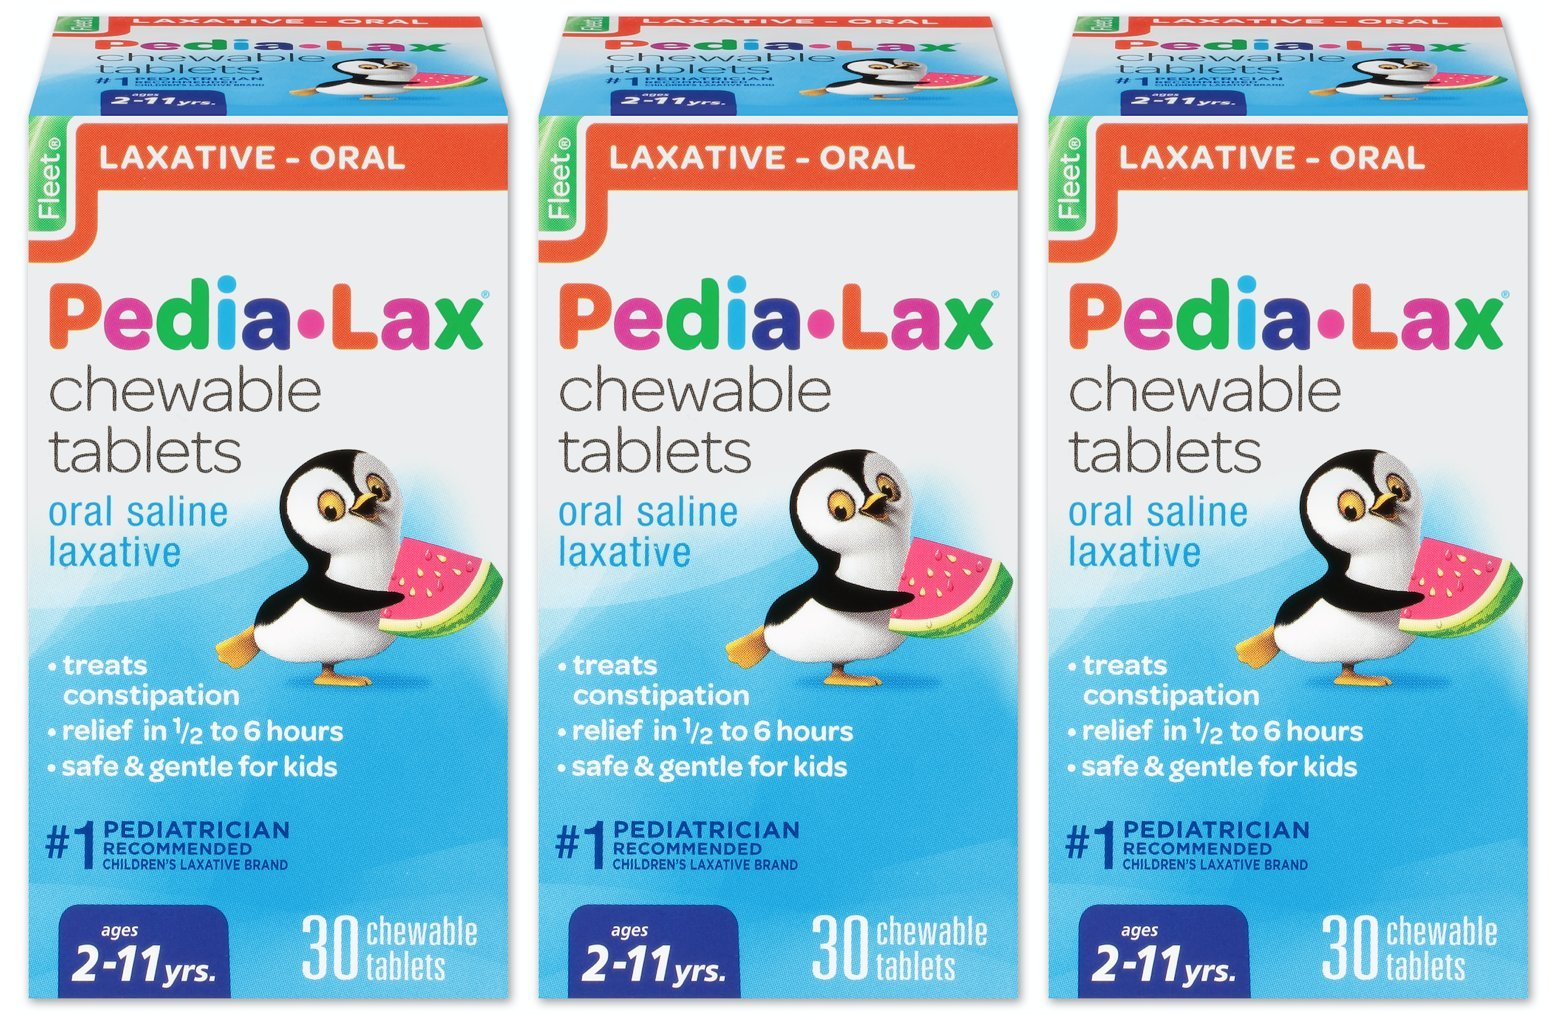 Pedia-Lax Children's Saline Laxative Chewable Tablets, Watermelon, 30 Tablets (Pack of 3) (Pack May Vary) by Pedia-Lax